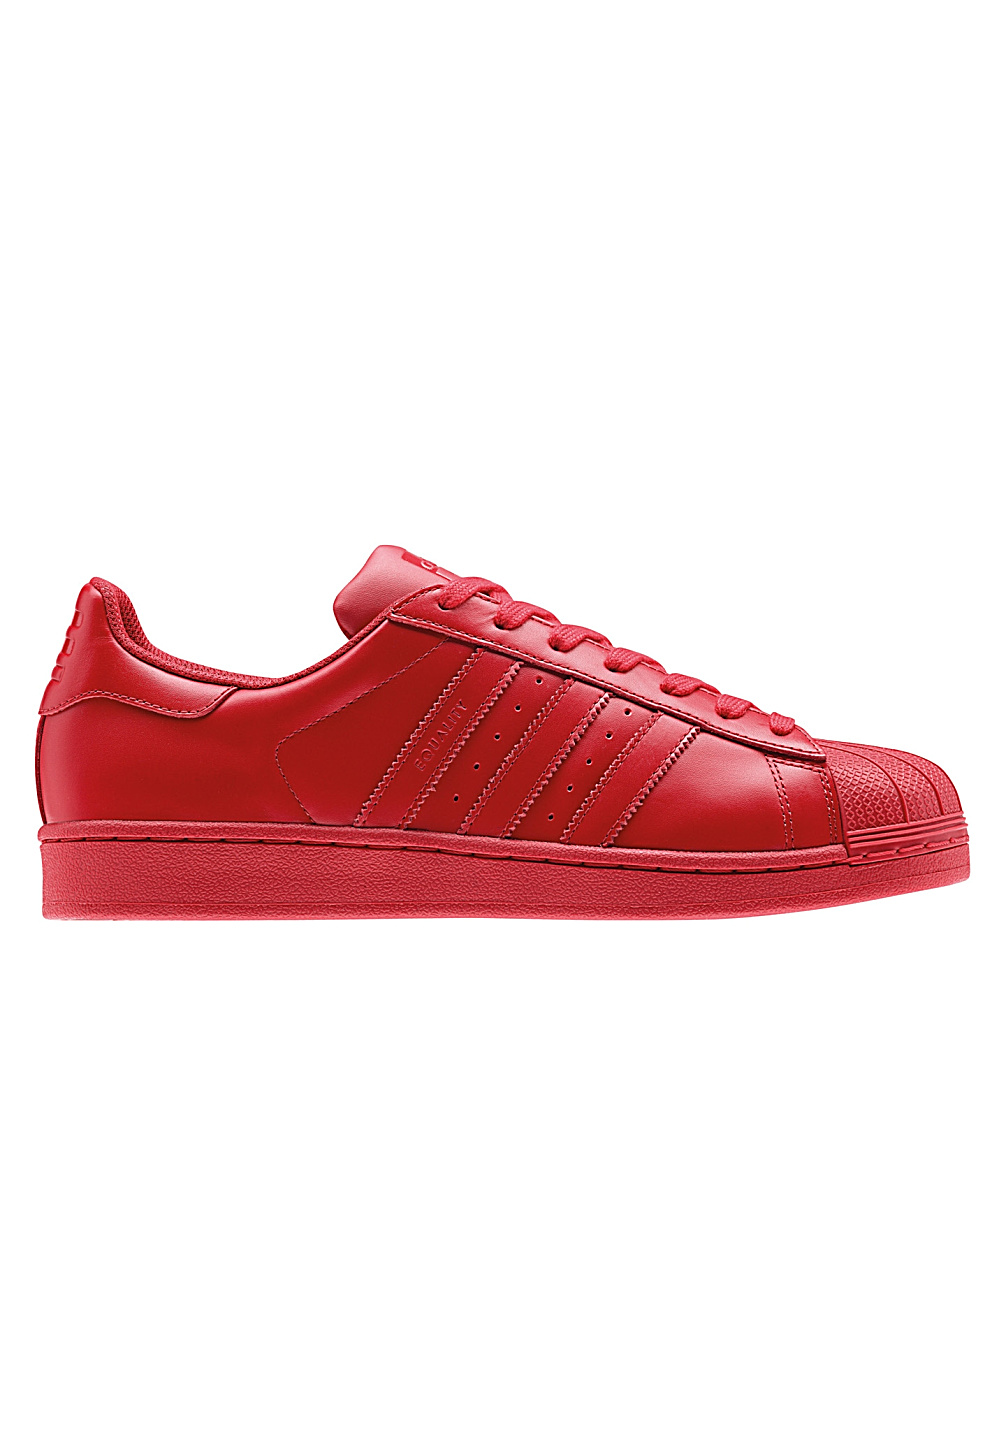 adidas superstar colors red